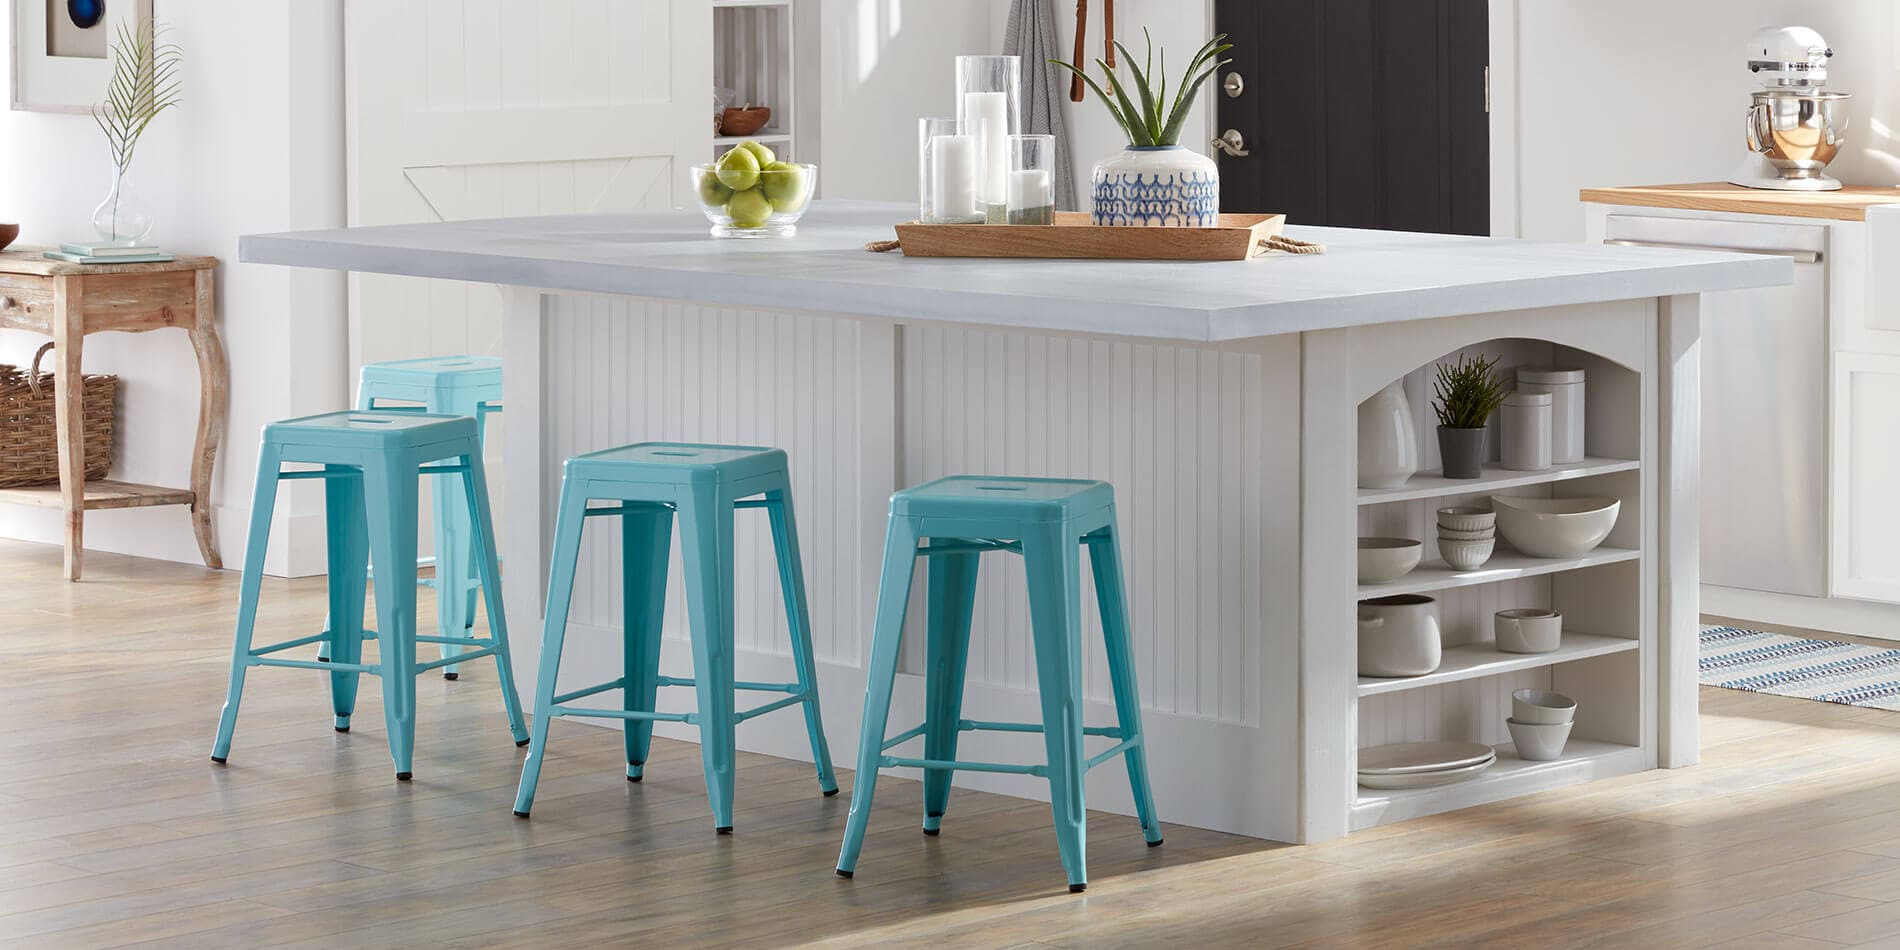 Pretty Images For Kitchen Furniture Photos >> Beautiful Idea ...